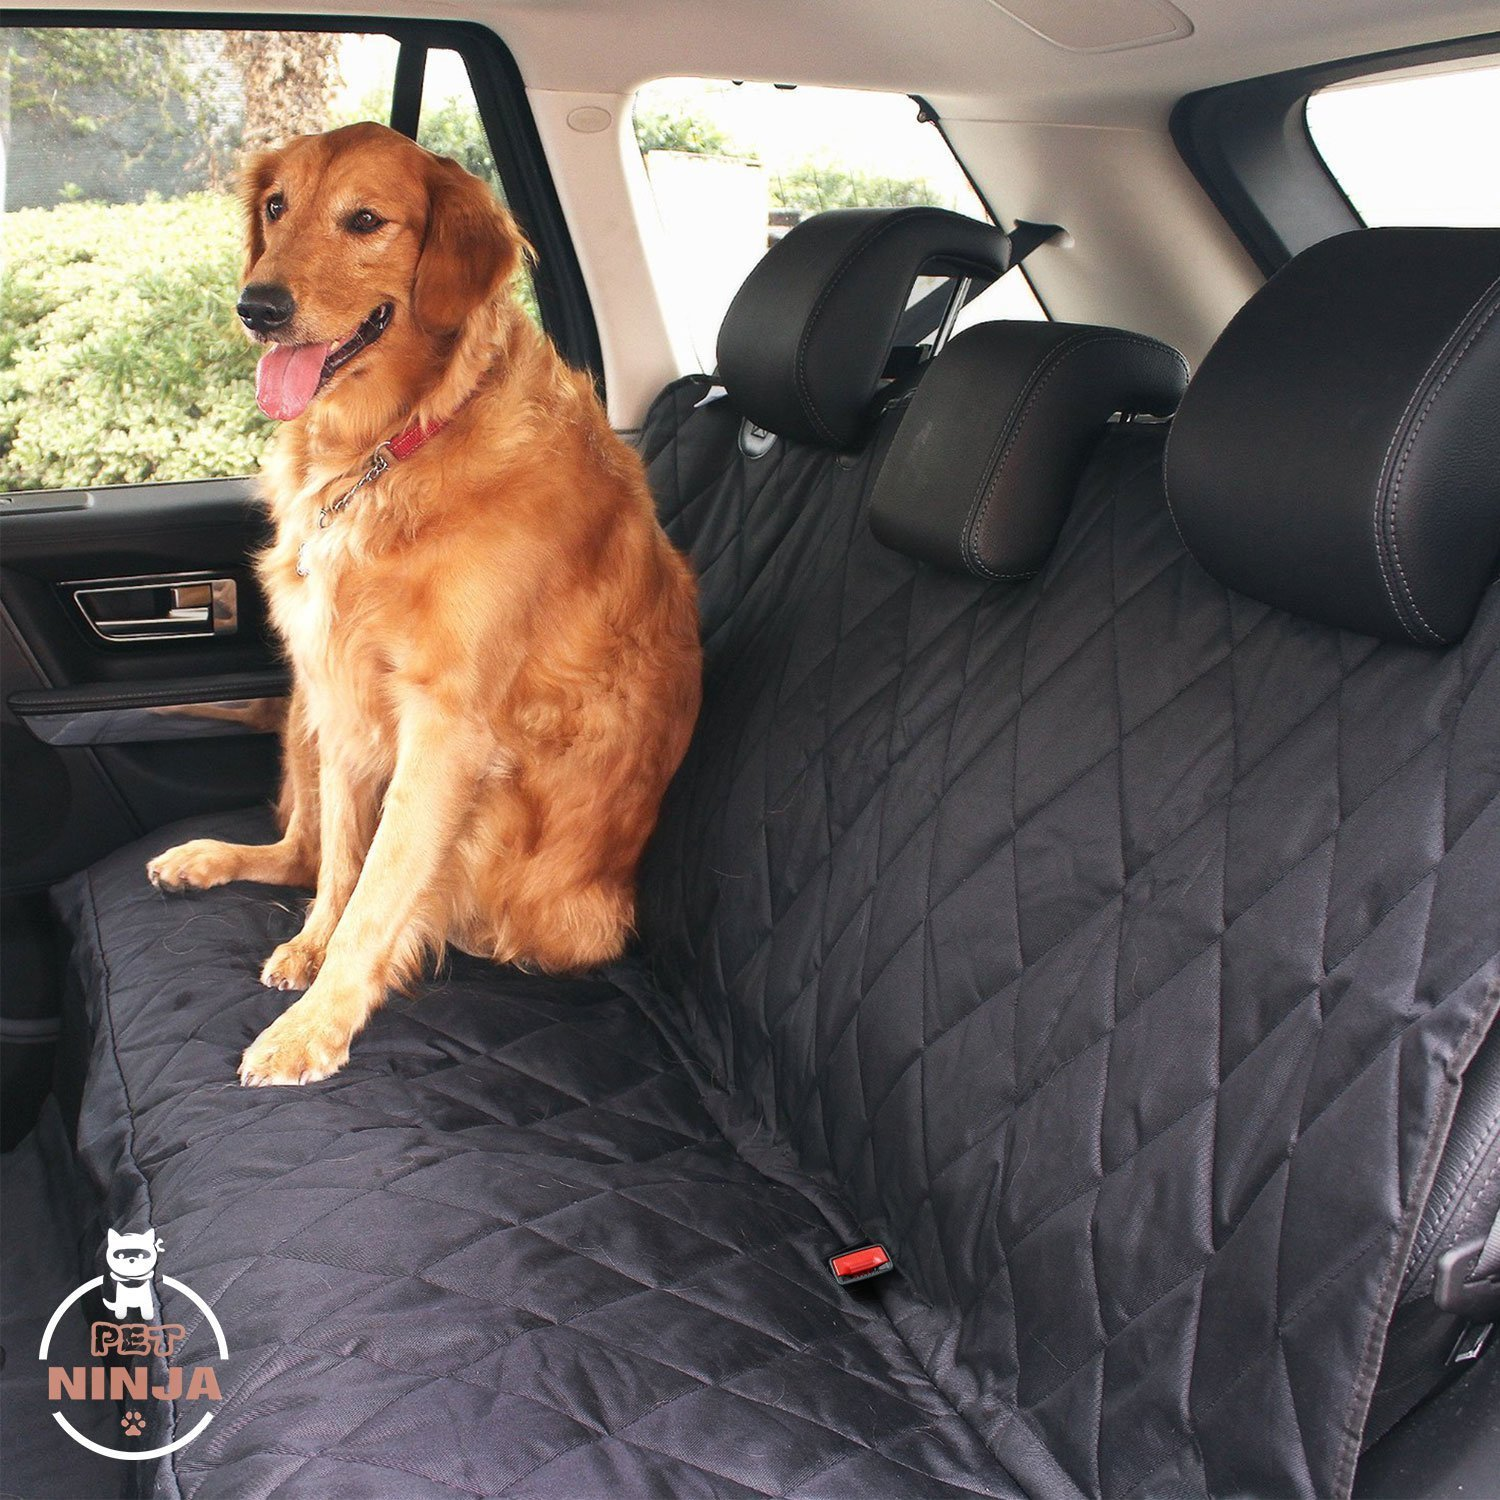 PETNINJA Luxury Waterproof Pet Seat Cover for Cars Durable Dog Car Seat Cover for Cars Trucks and SUVs, Machine Washable